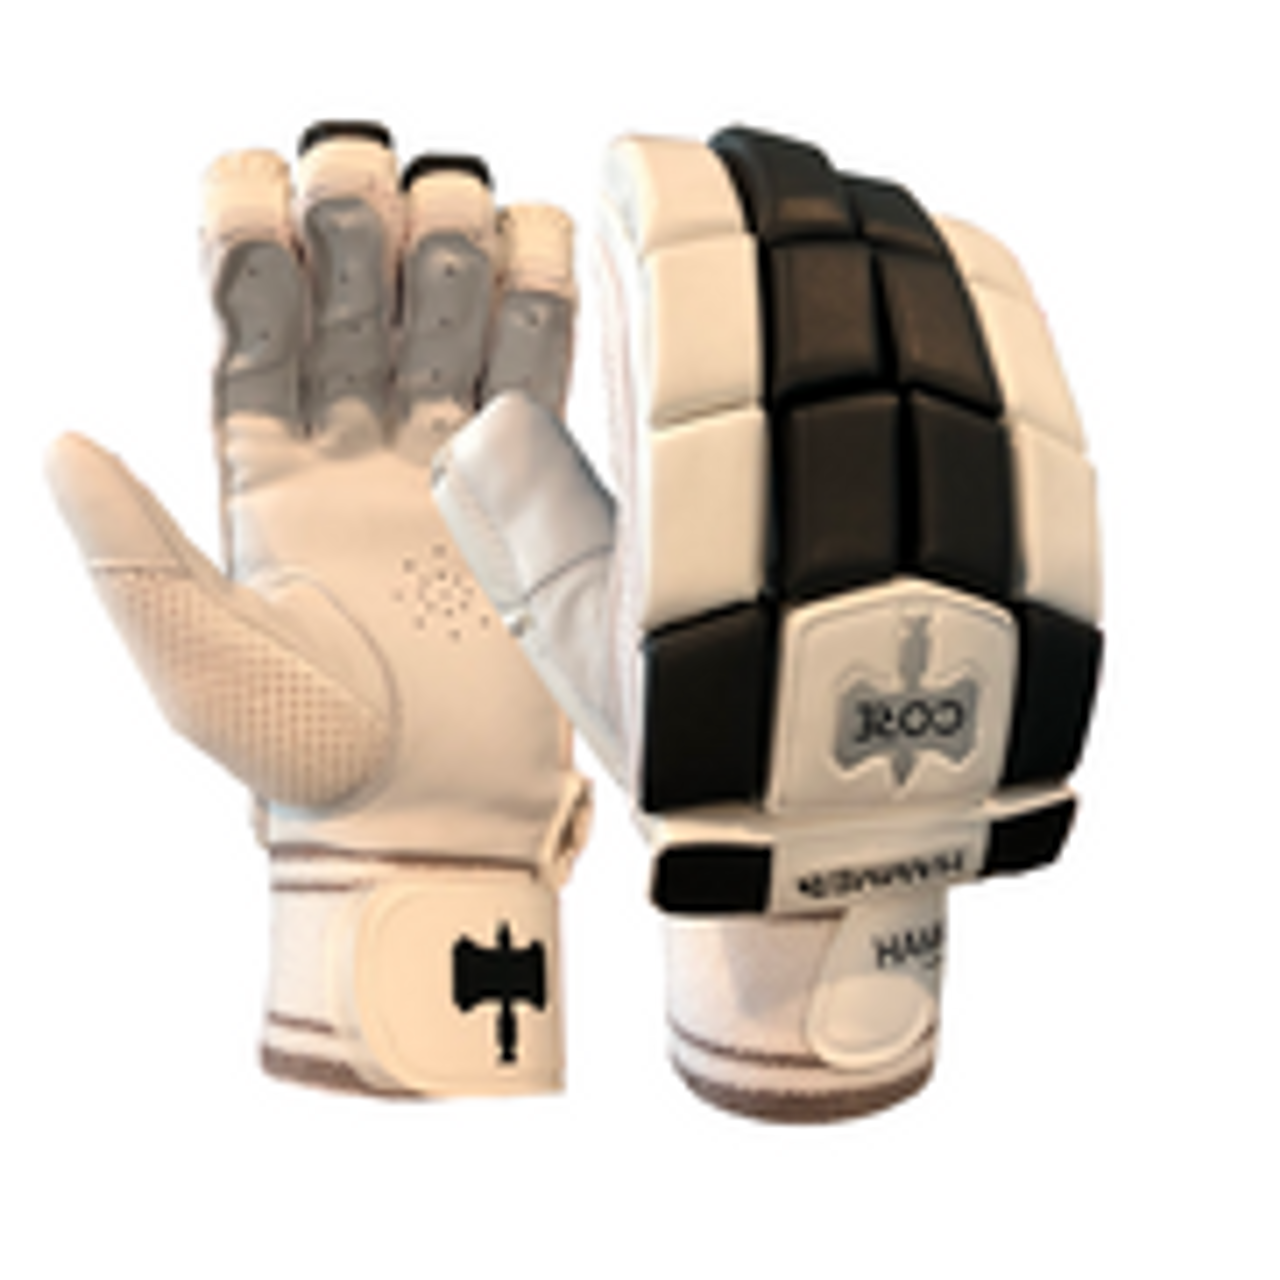 Hammer batting gloves